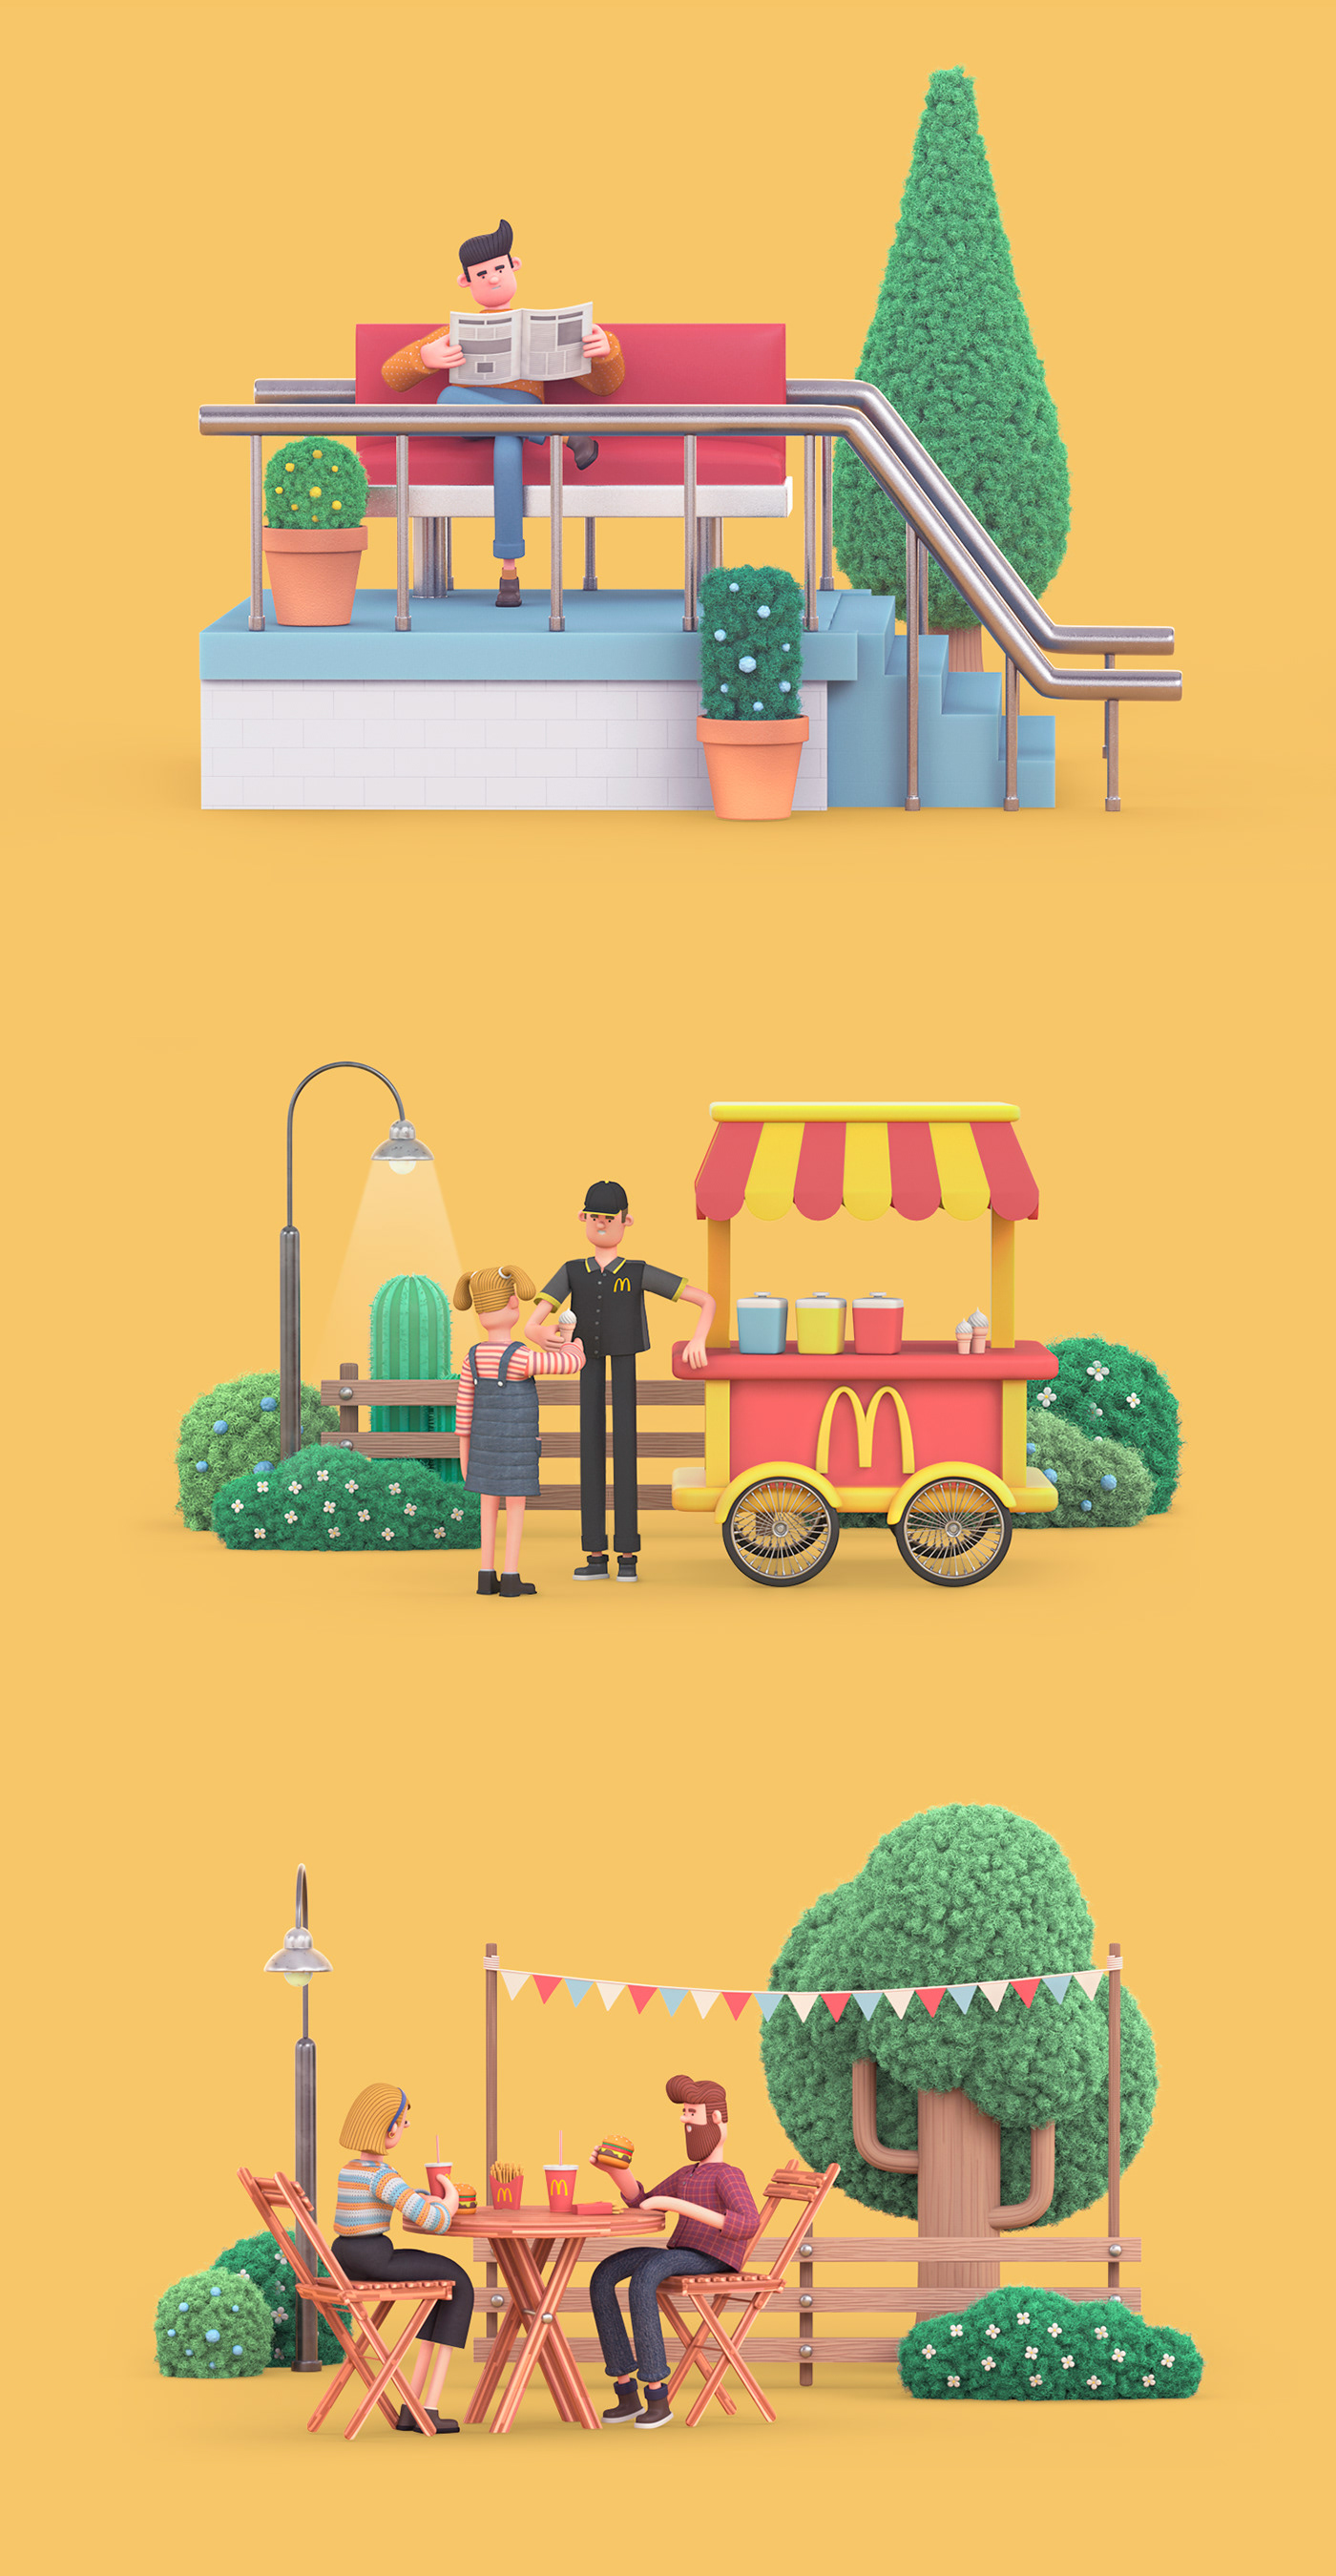 mcdonald's Monopoly app game characters Icon loops intro Low Poly city